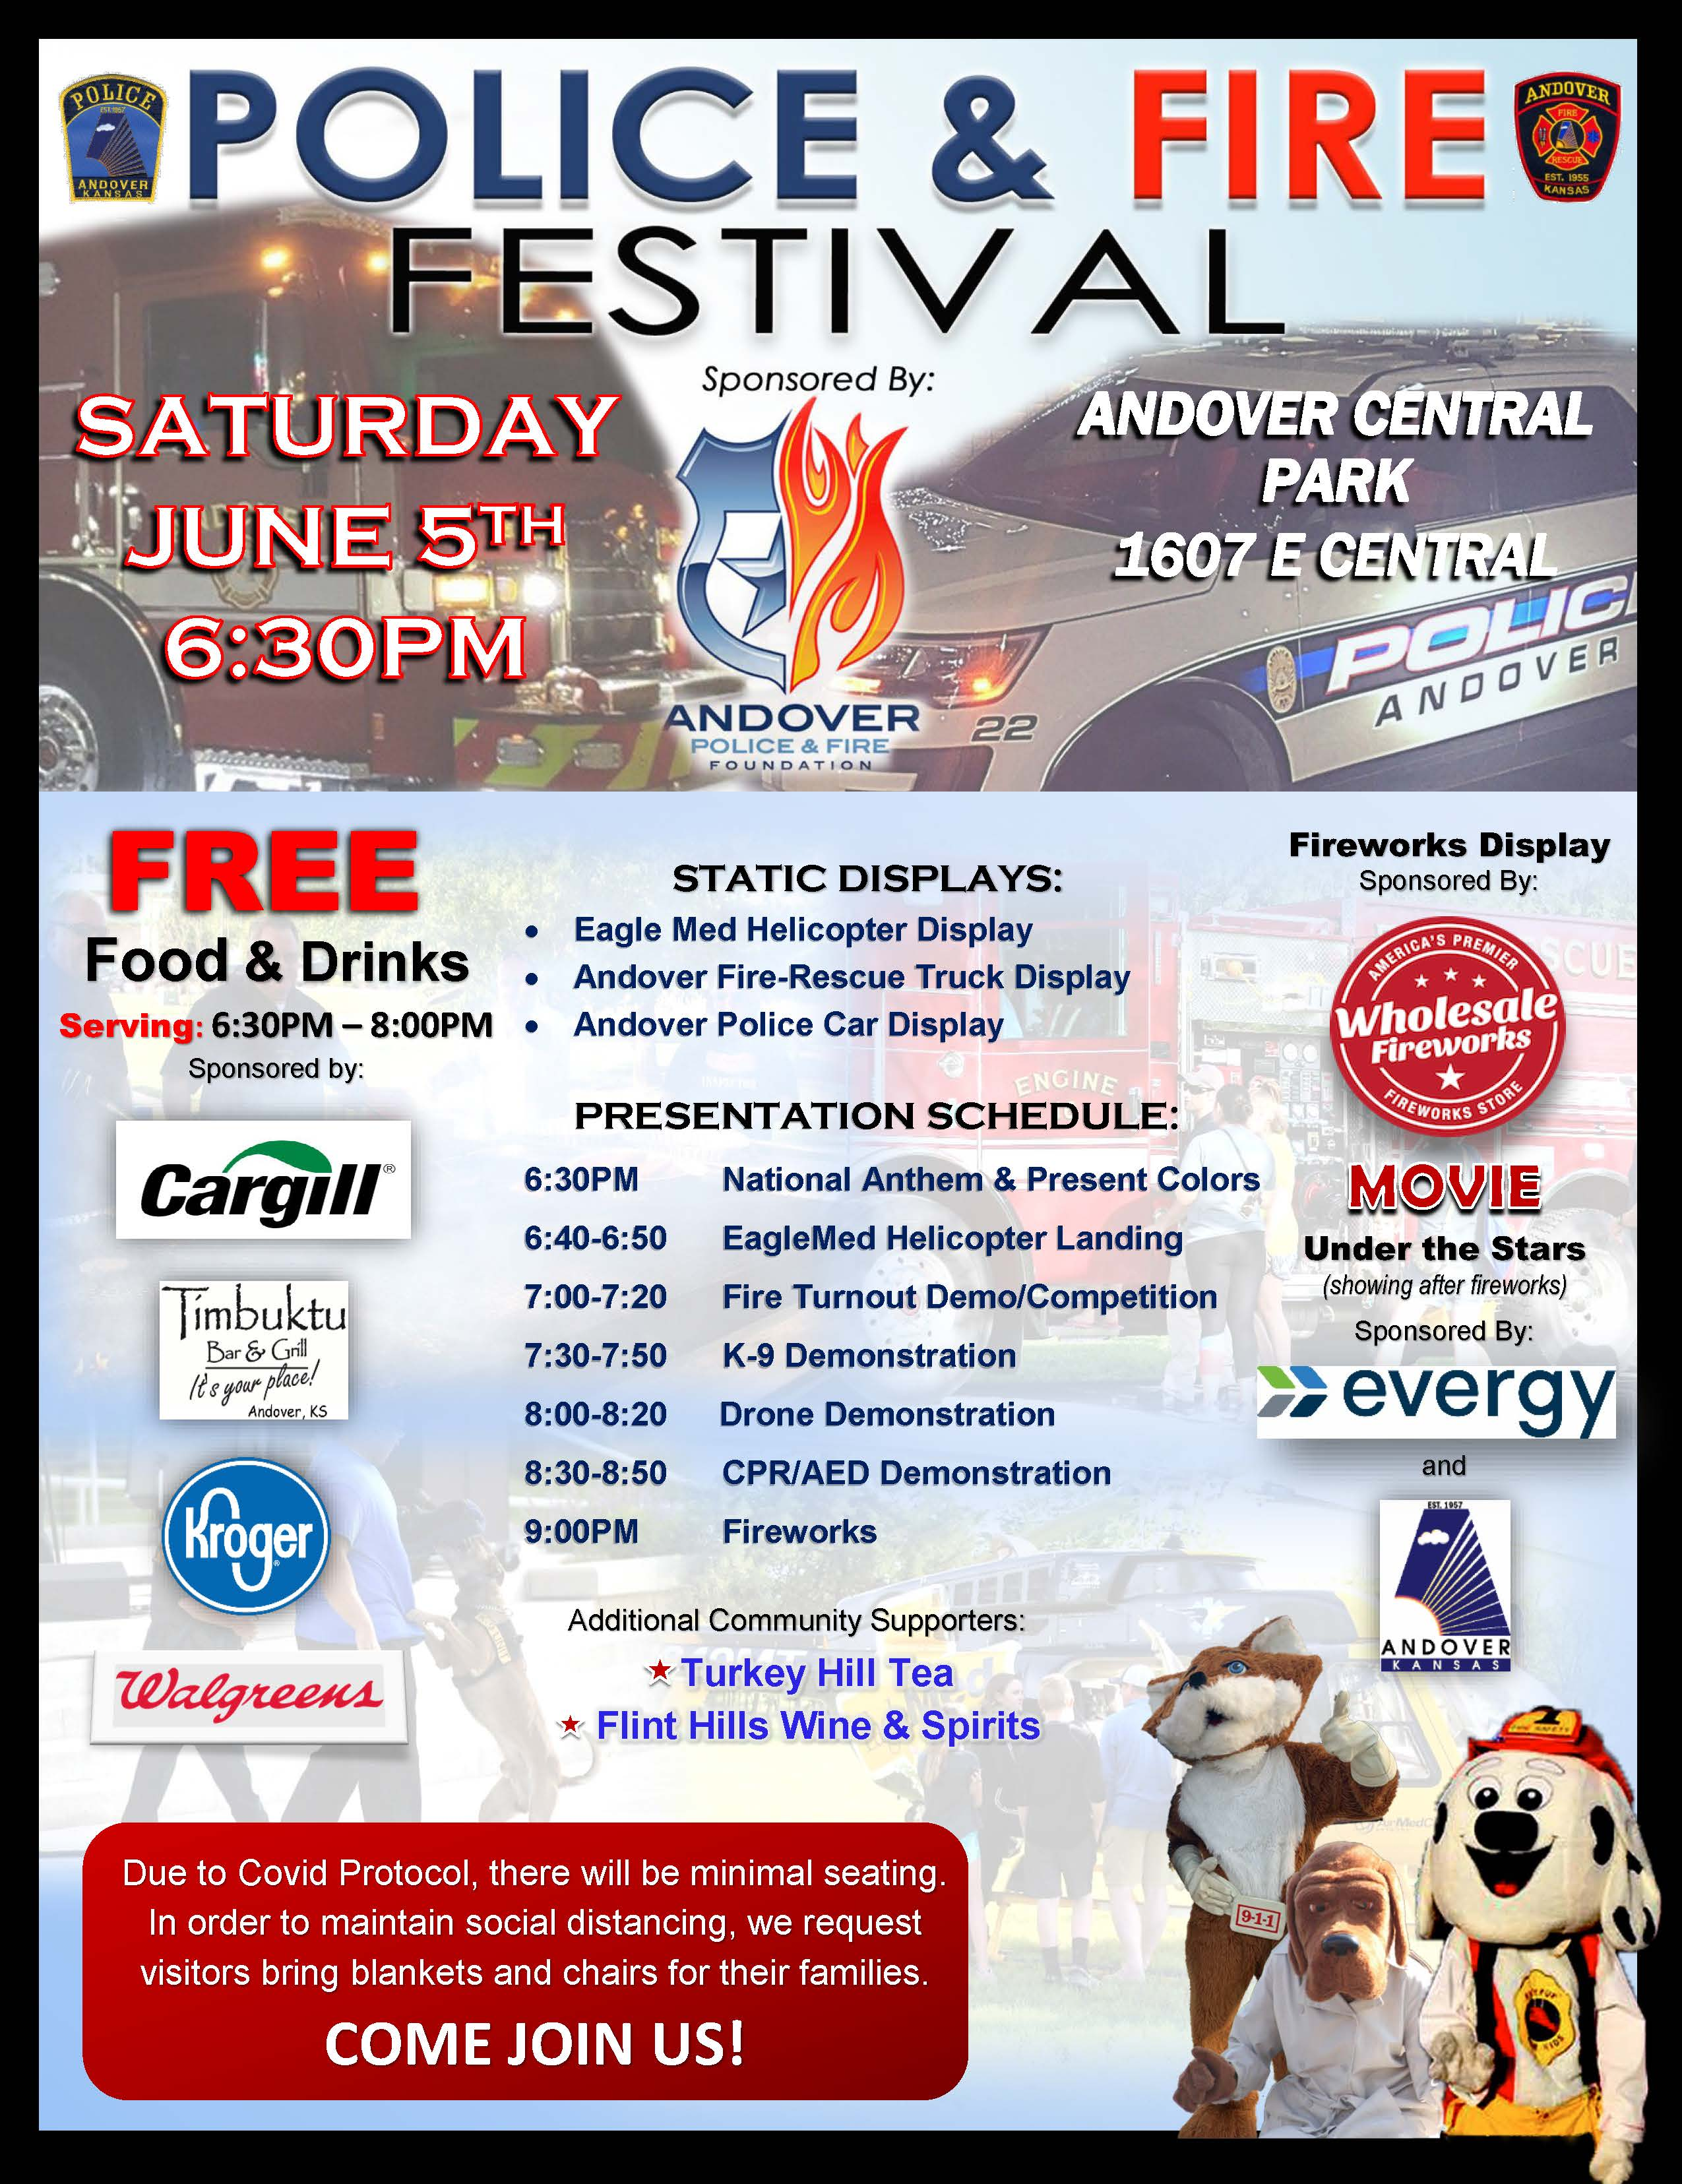 2021 Police Fire Festival June 5th at 6:30pm in Central Park